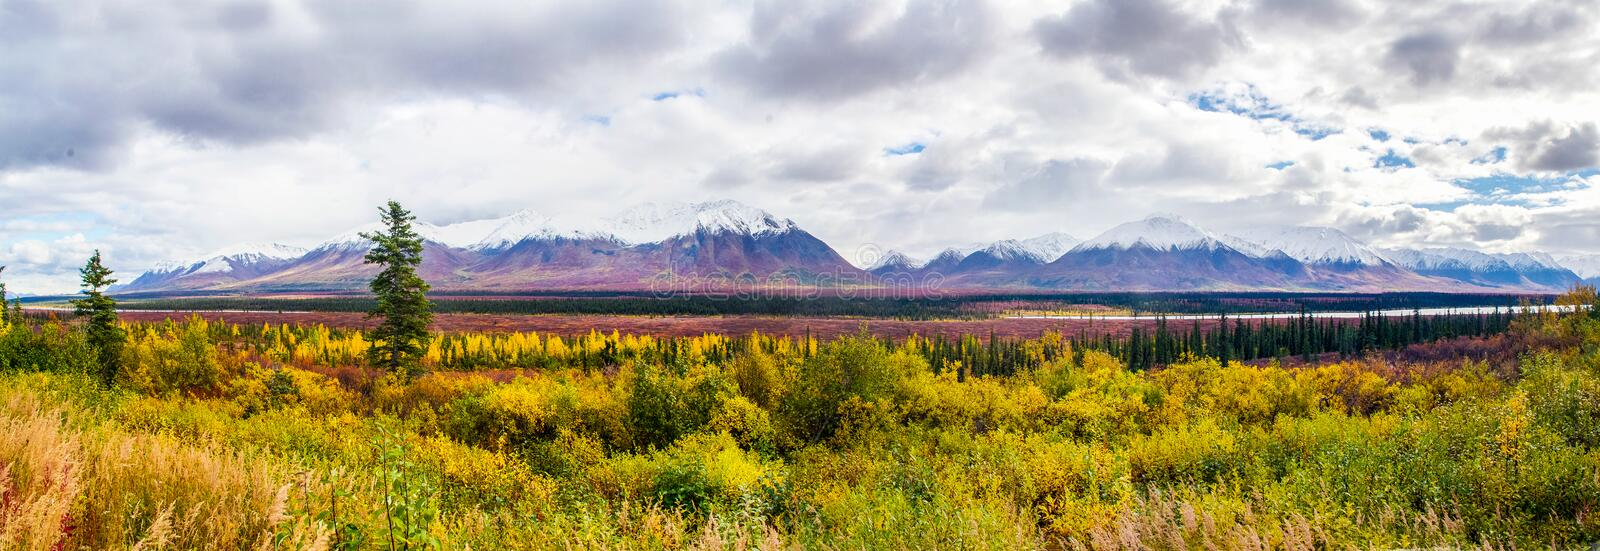 Sur la route au parc national de Denali photo stock